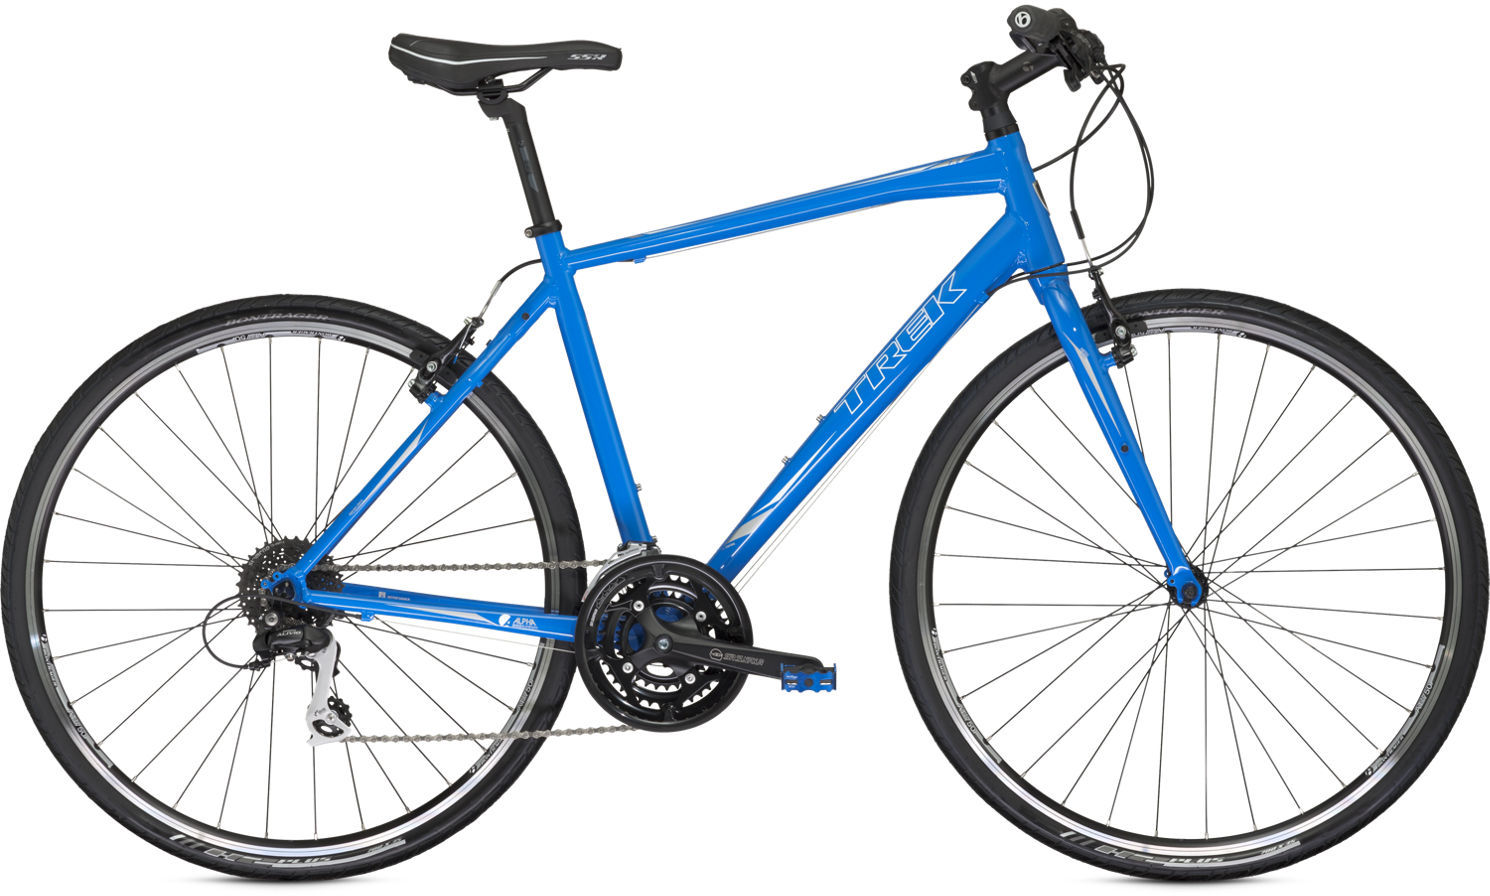 dating trek bikes Bike and frame weights are based off trek pre-production painted frames at time of publication weights may vary in final production sizing & fit.